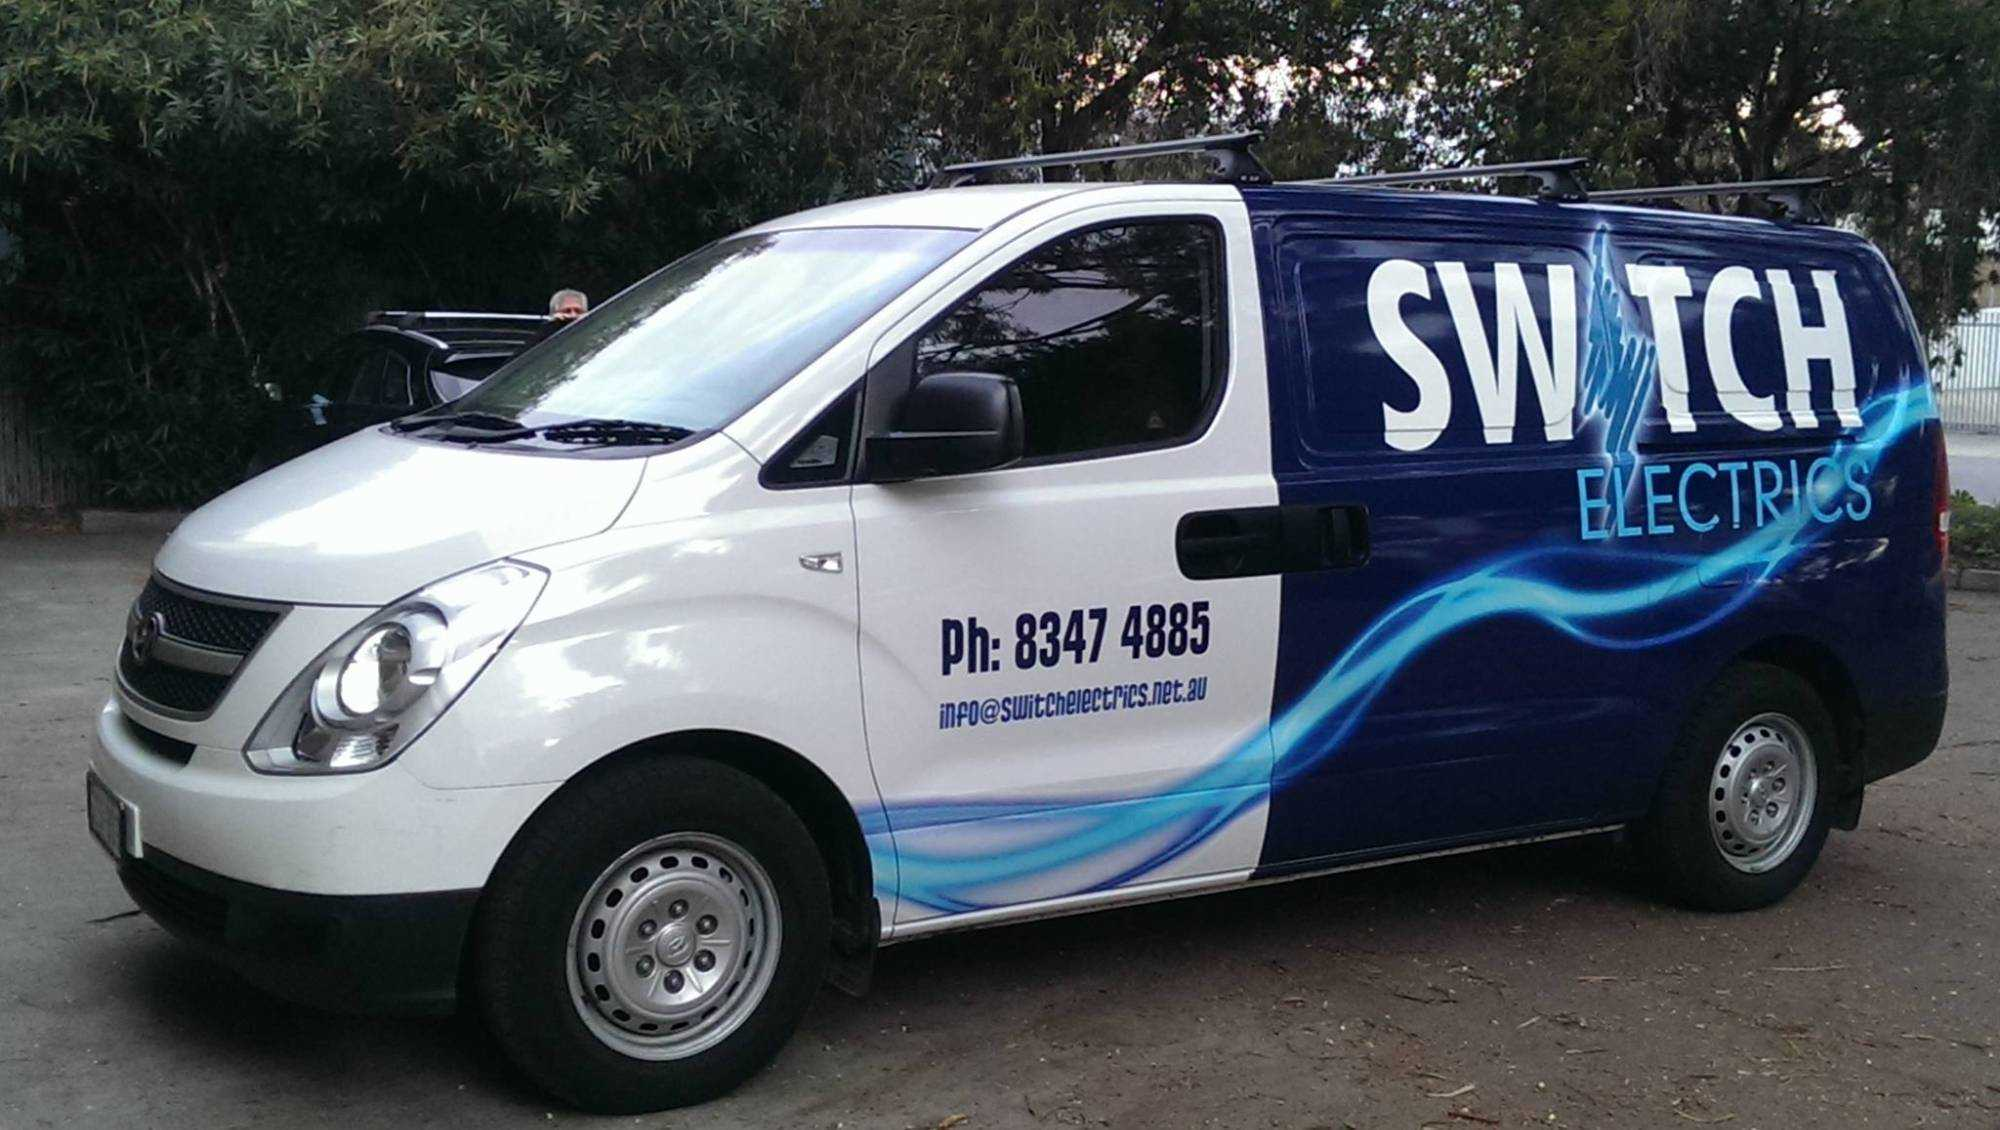 Switch electrics fully stocked on site vans